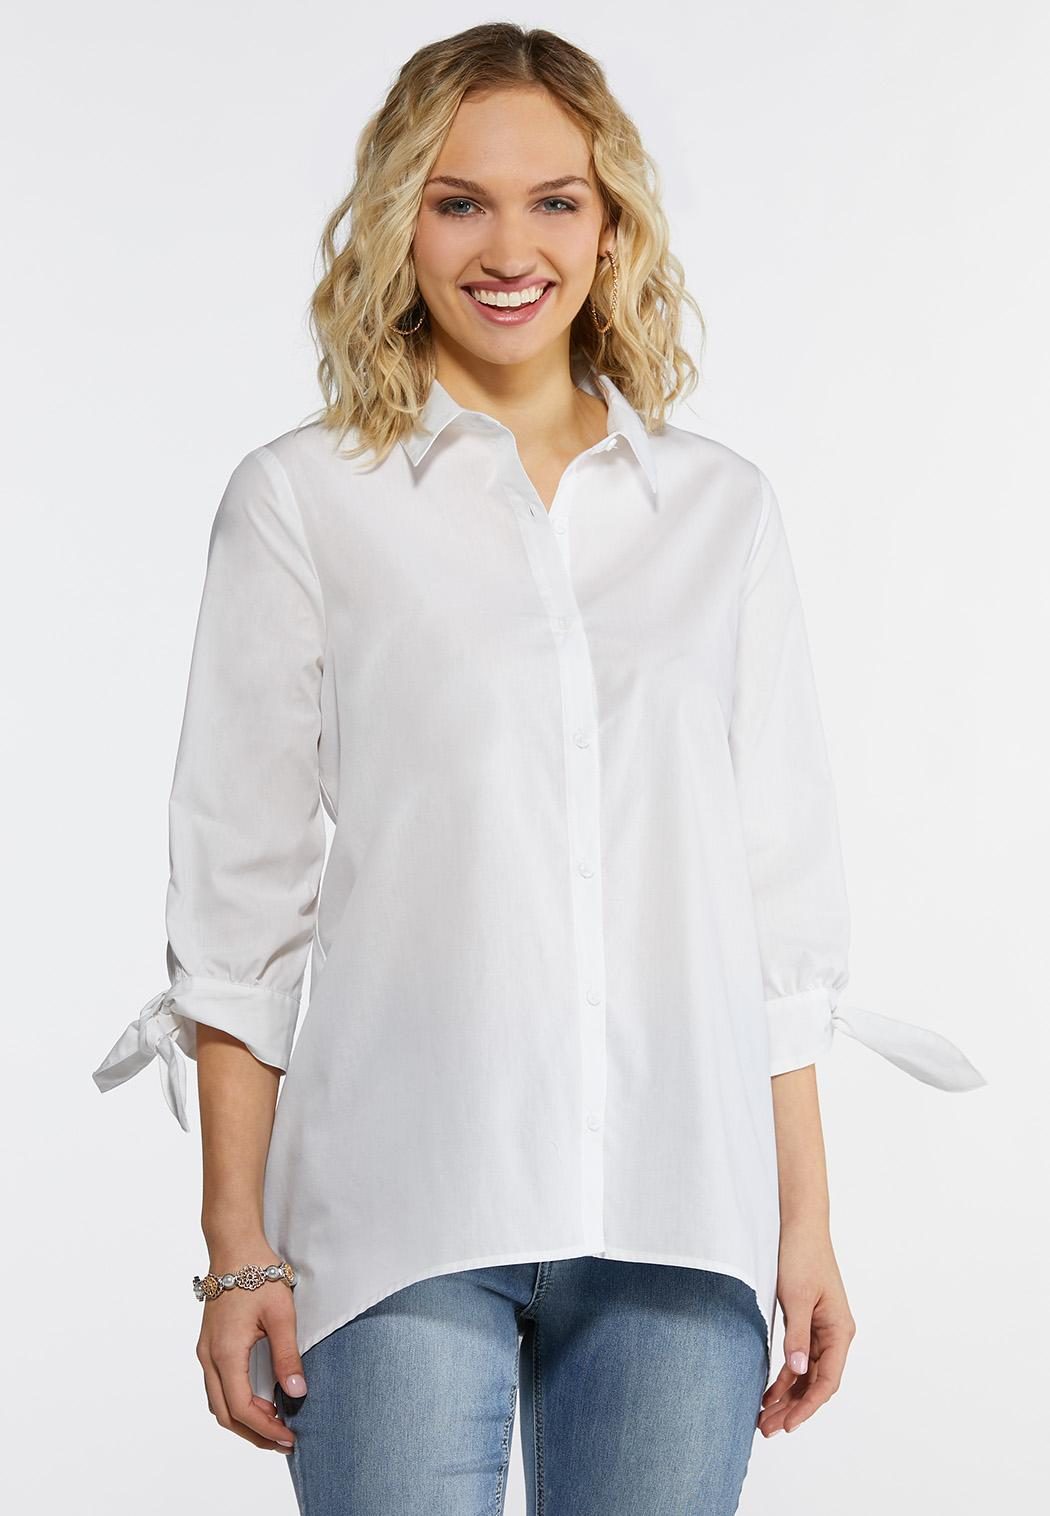 4e740fac698 White Tie Sleeve Tunic alternate view · White Tie Sleeve Tunic